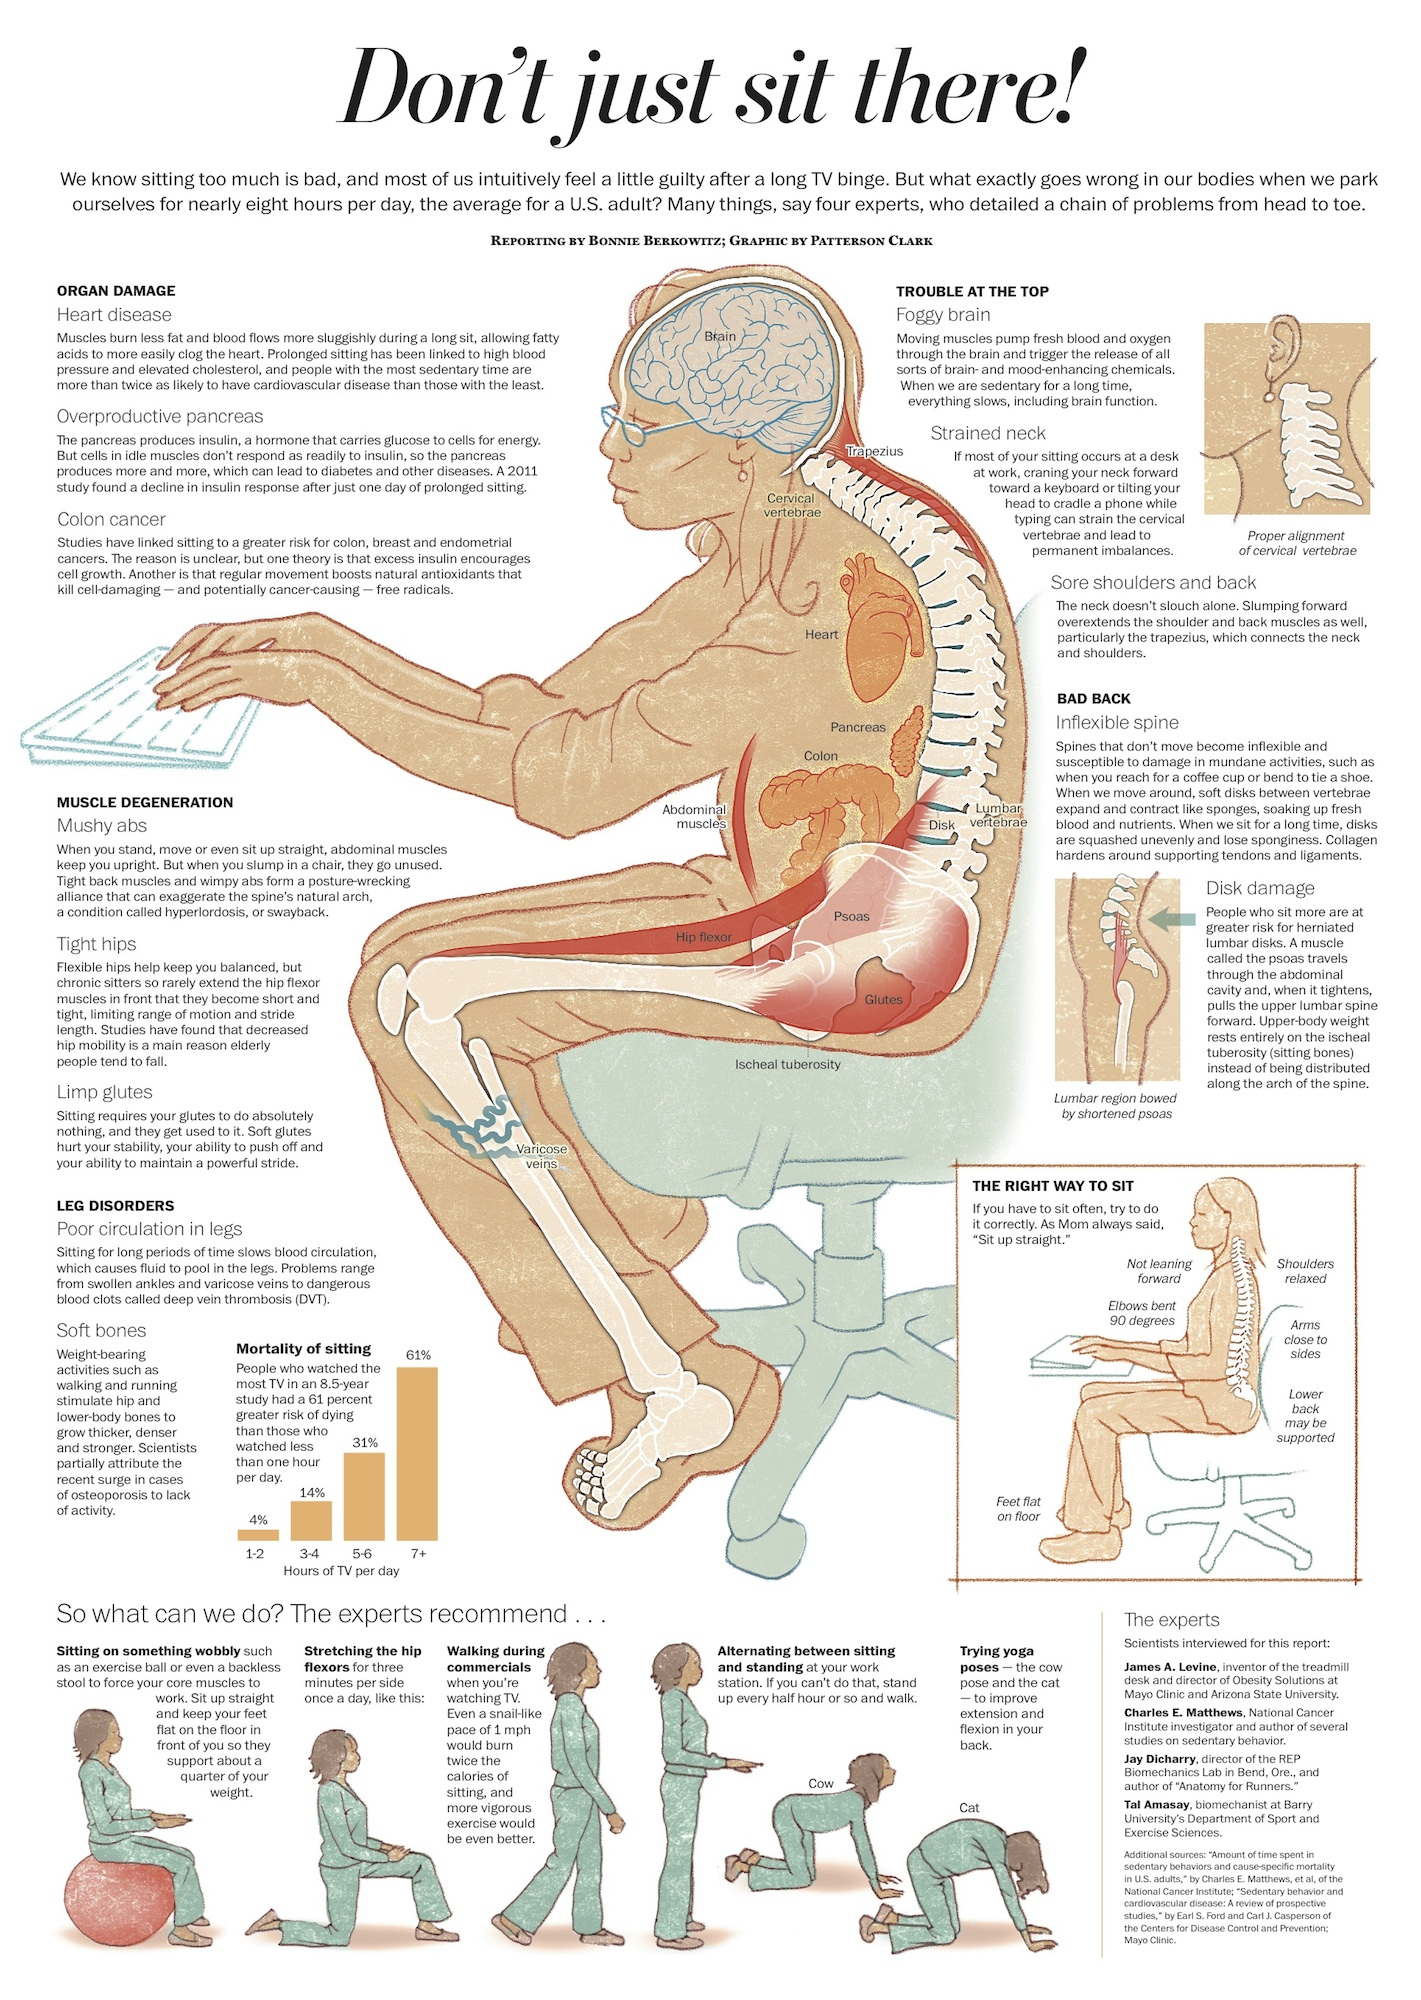 Fight back pain when sitting 28